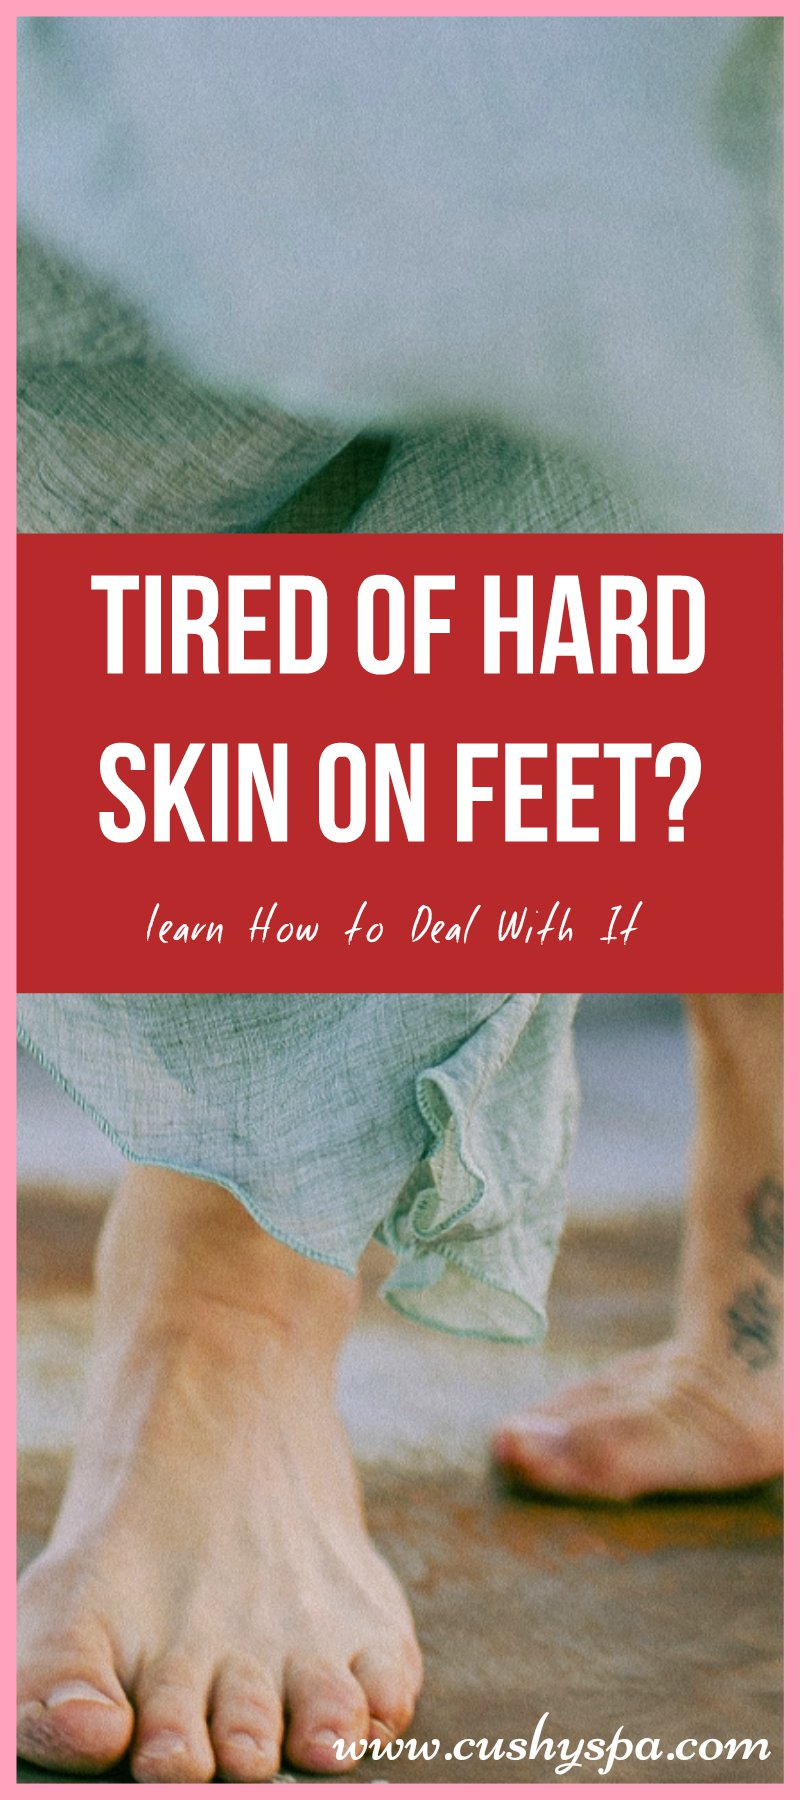 how to get rid of tough skin on feet